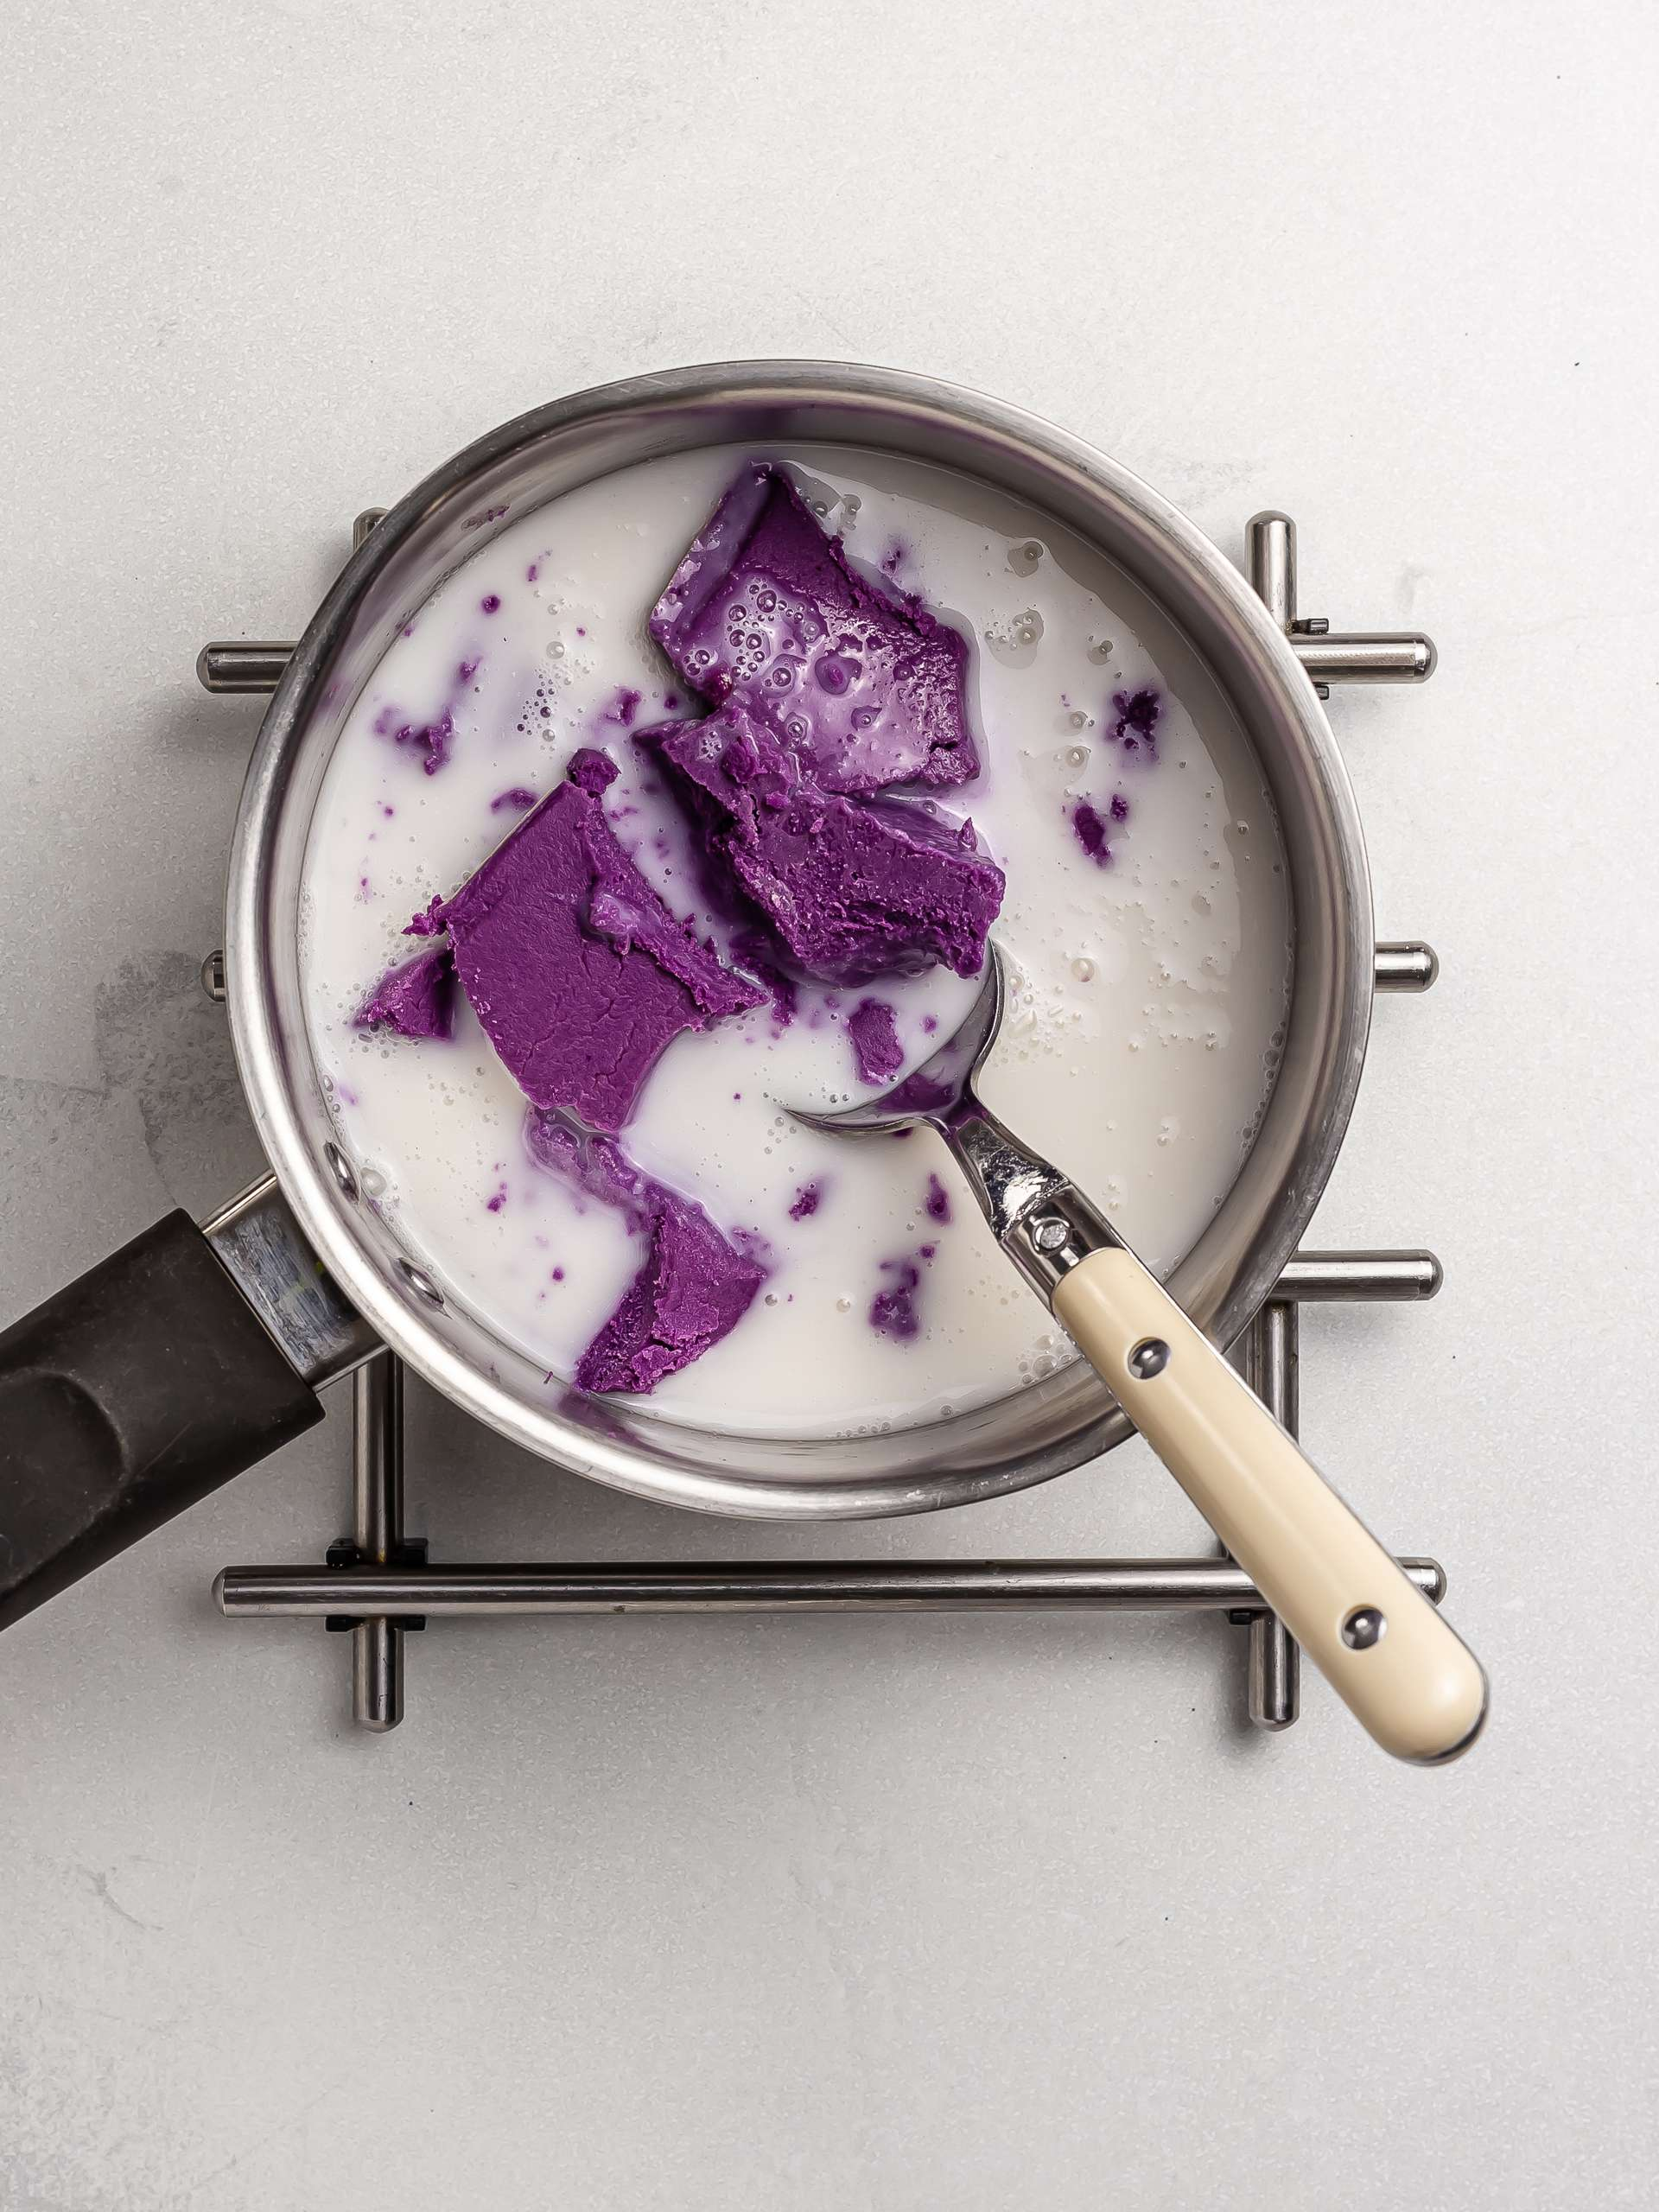 melting ube butter with milk in a pot